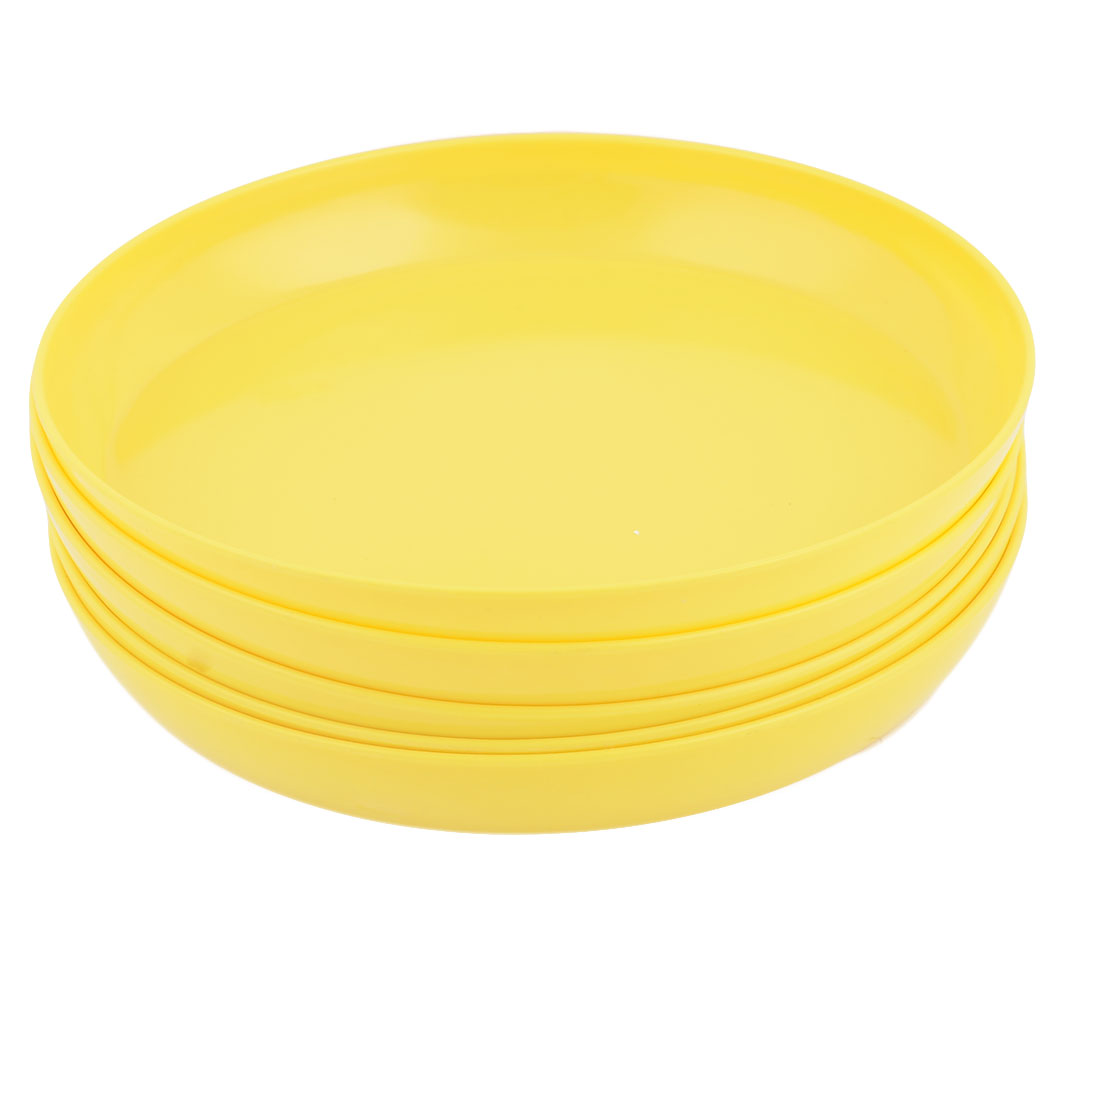 Home Windowsill Melamine Round Plant Flower Pot Holder Tray Container Yellow 5 Pcs